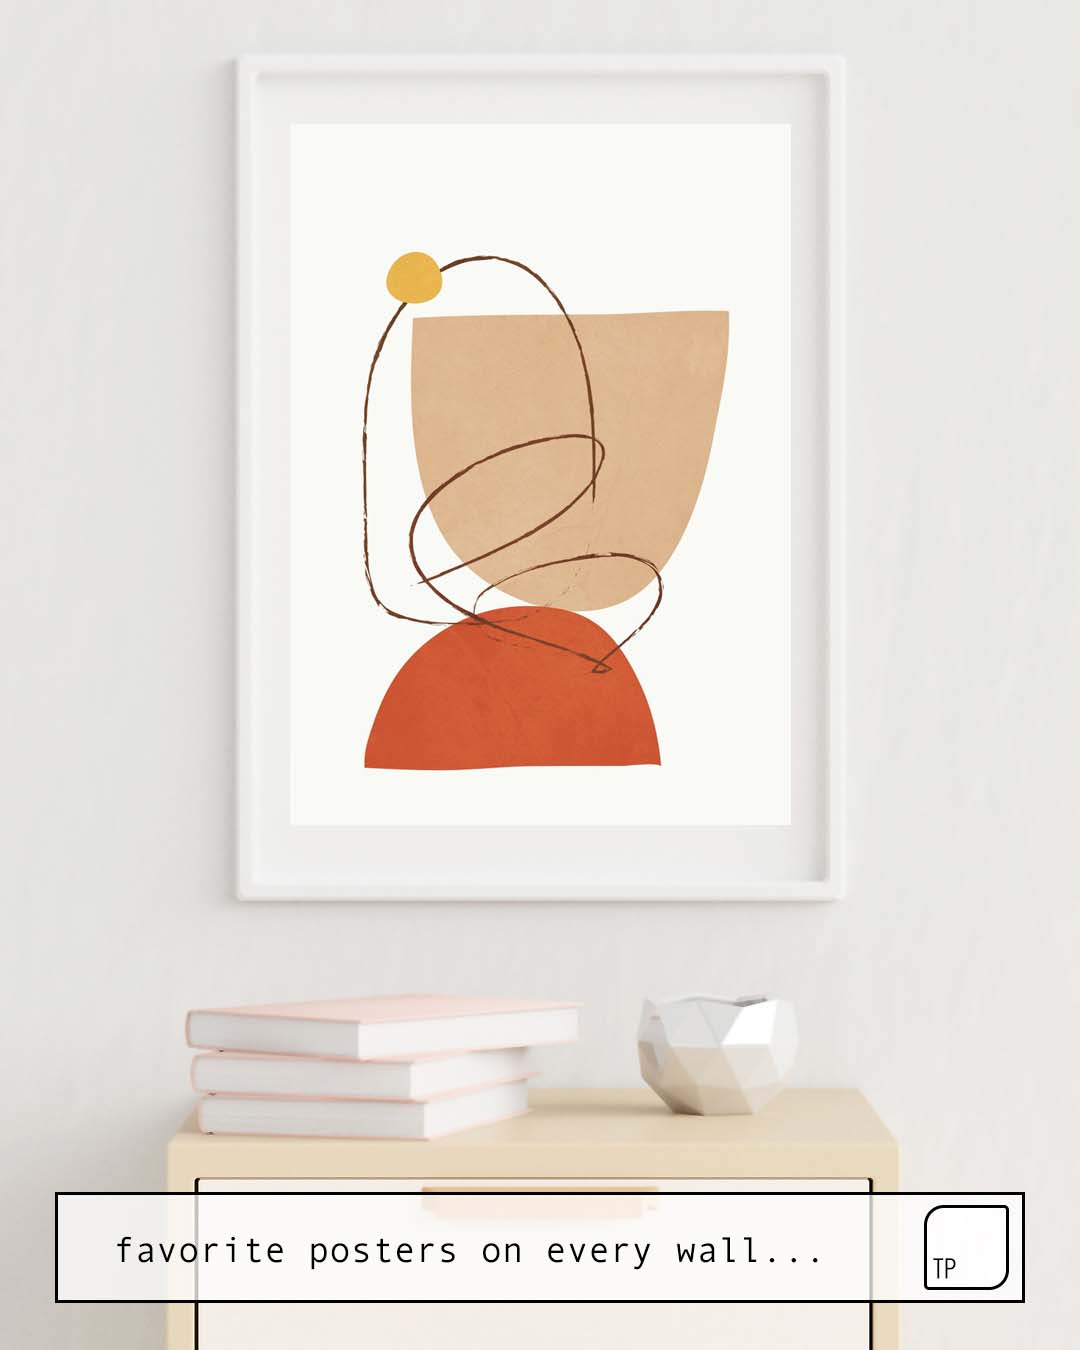 Poster | ABSTRACT SHAPES 5 by Andreas12